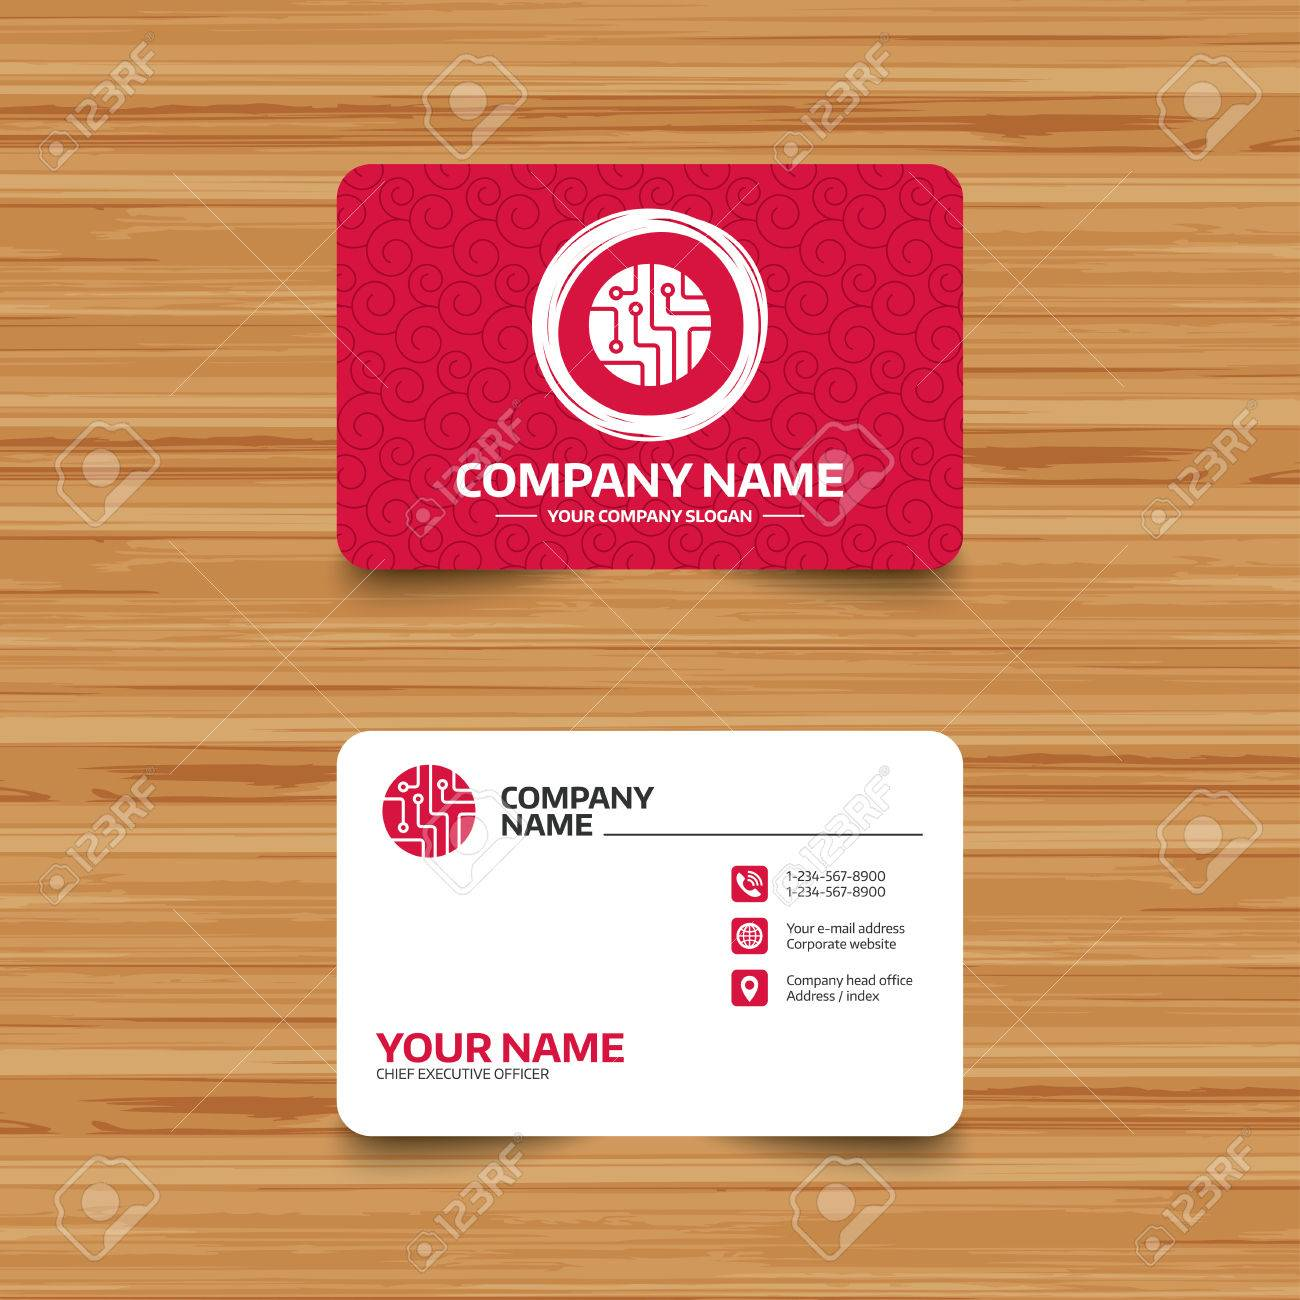 Business card template with texture circuit board sign icon business card template with texture circuit board sign icon technology scheme circle symbol colourmoves